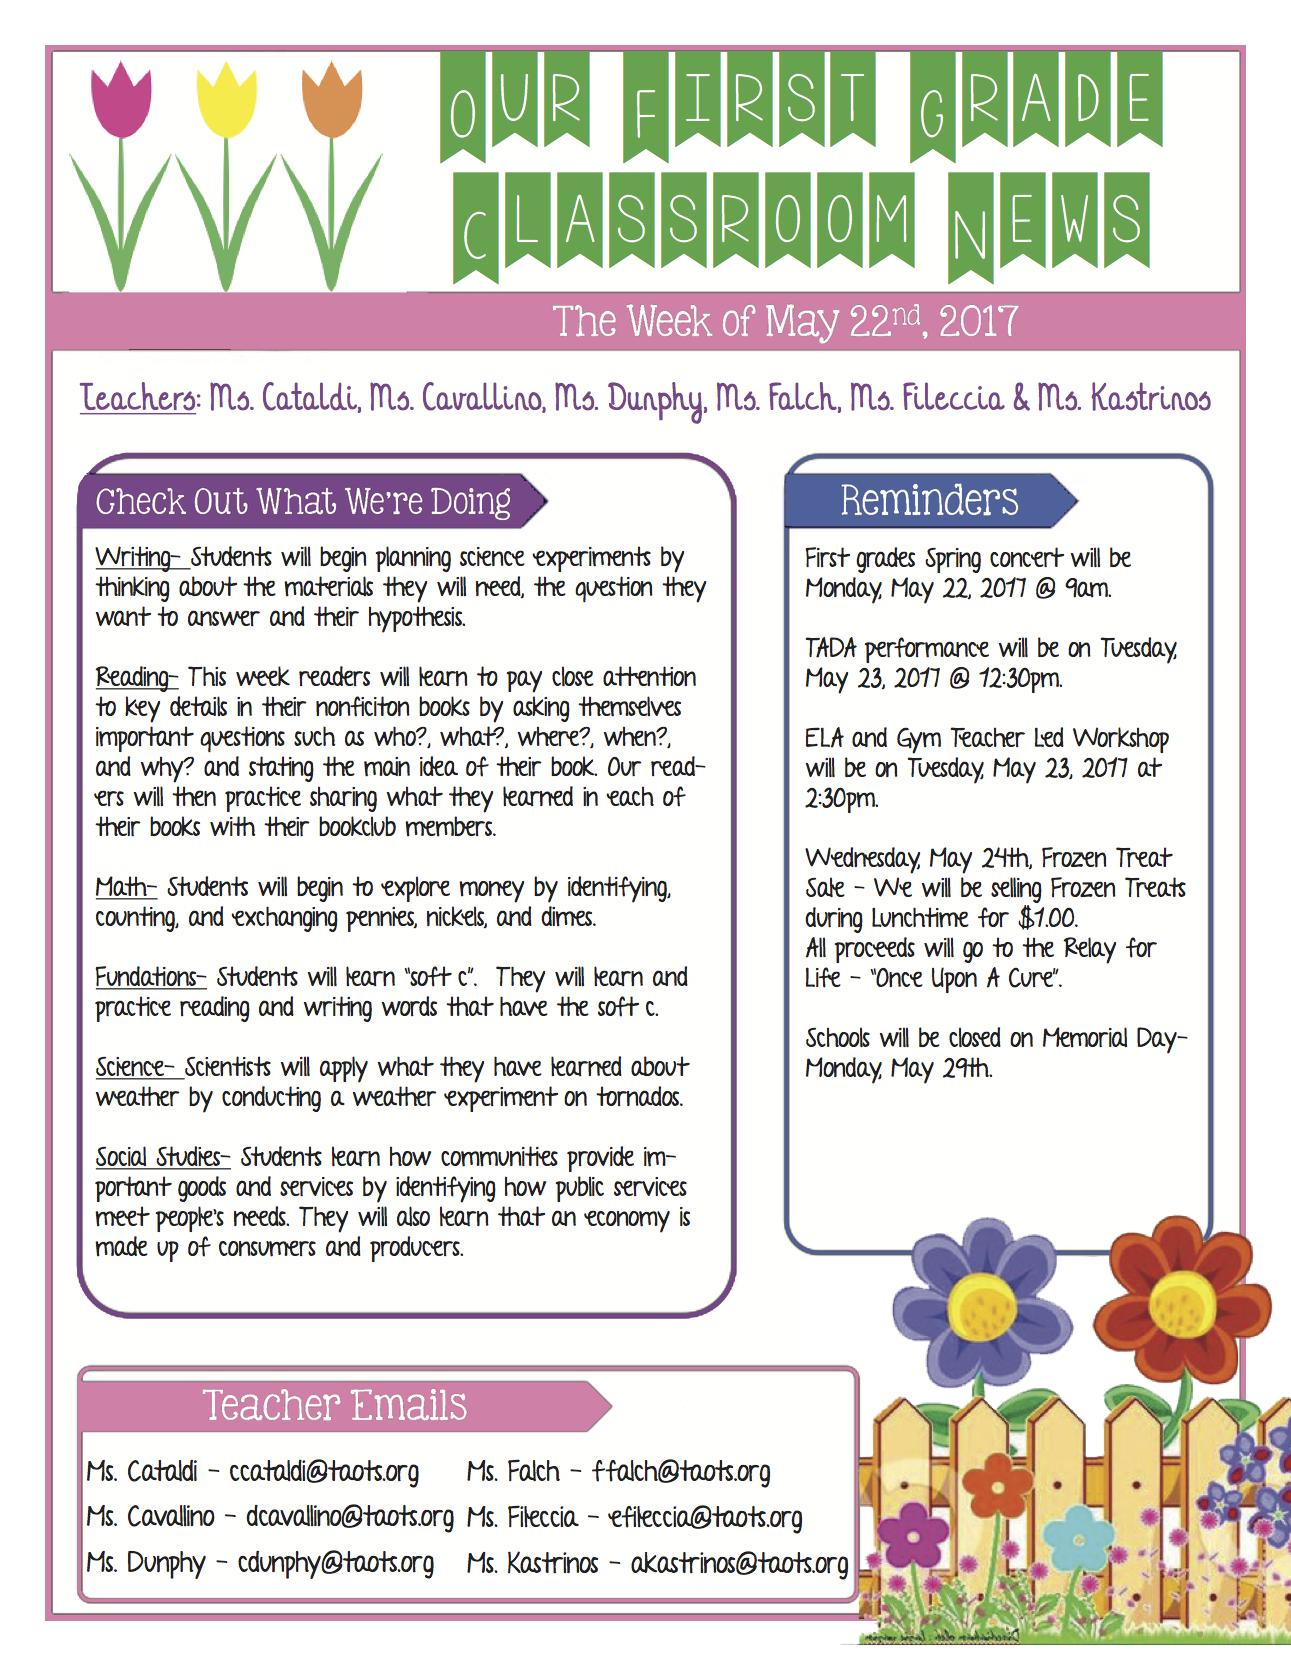 Worksheets Fundations Worksheets 1st grade homework newsletter for week of 52217